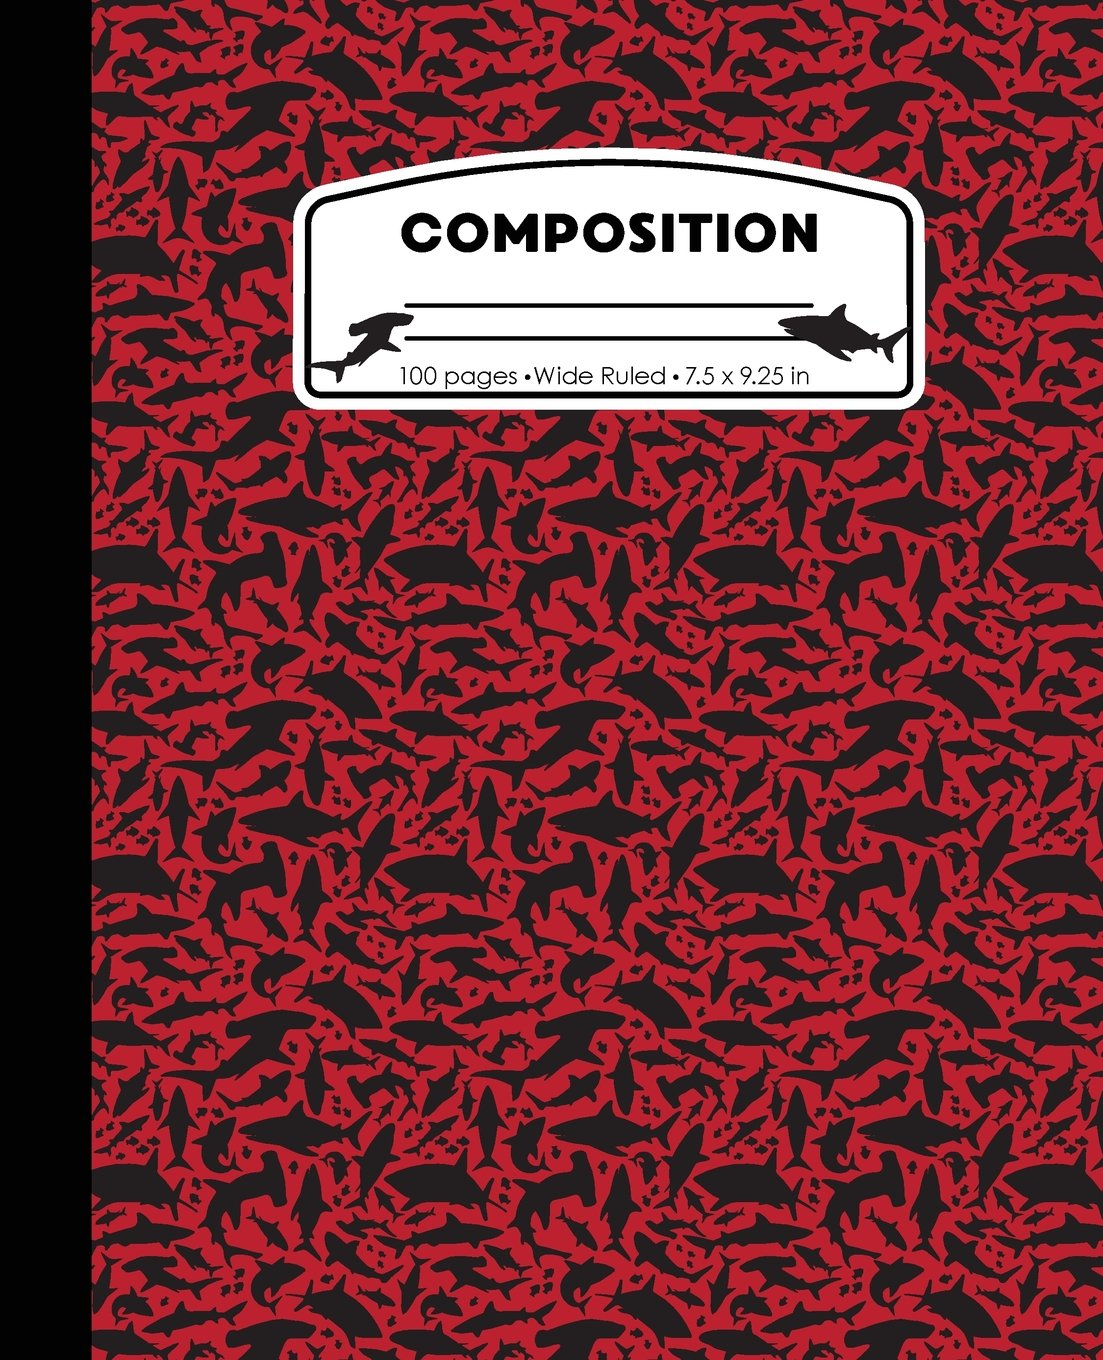 Composition: Sharks Red Marble Composition Notebook Wide Ruled 7.5 x 9.25 in, 100 pages book for boys, kids, school, students and teachers (Shark Marble Composition Books) PDF ePub book